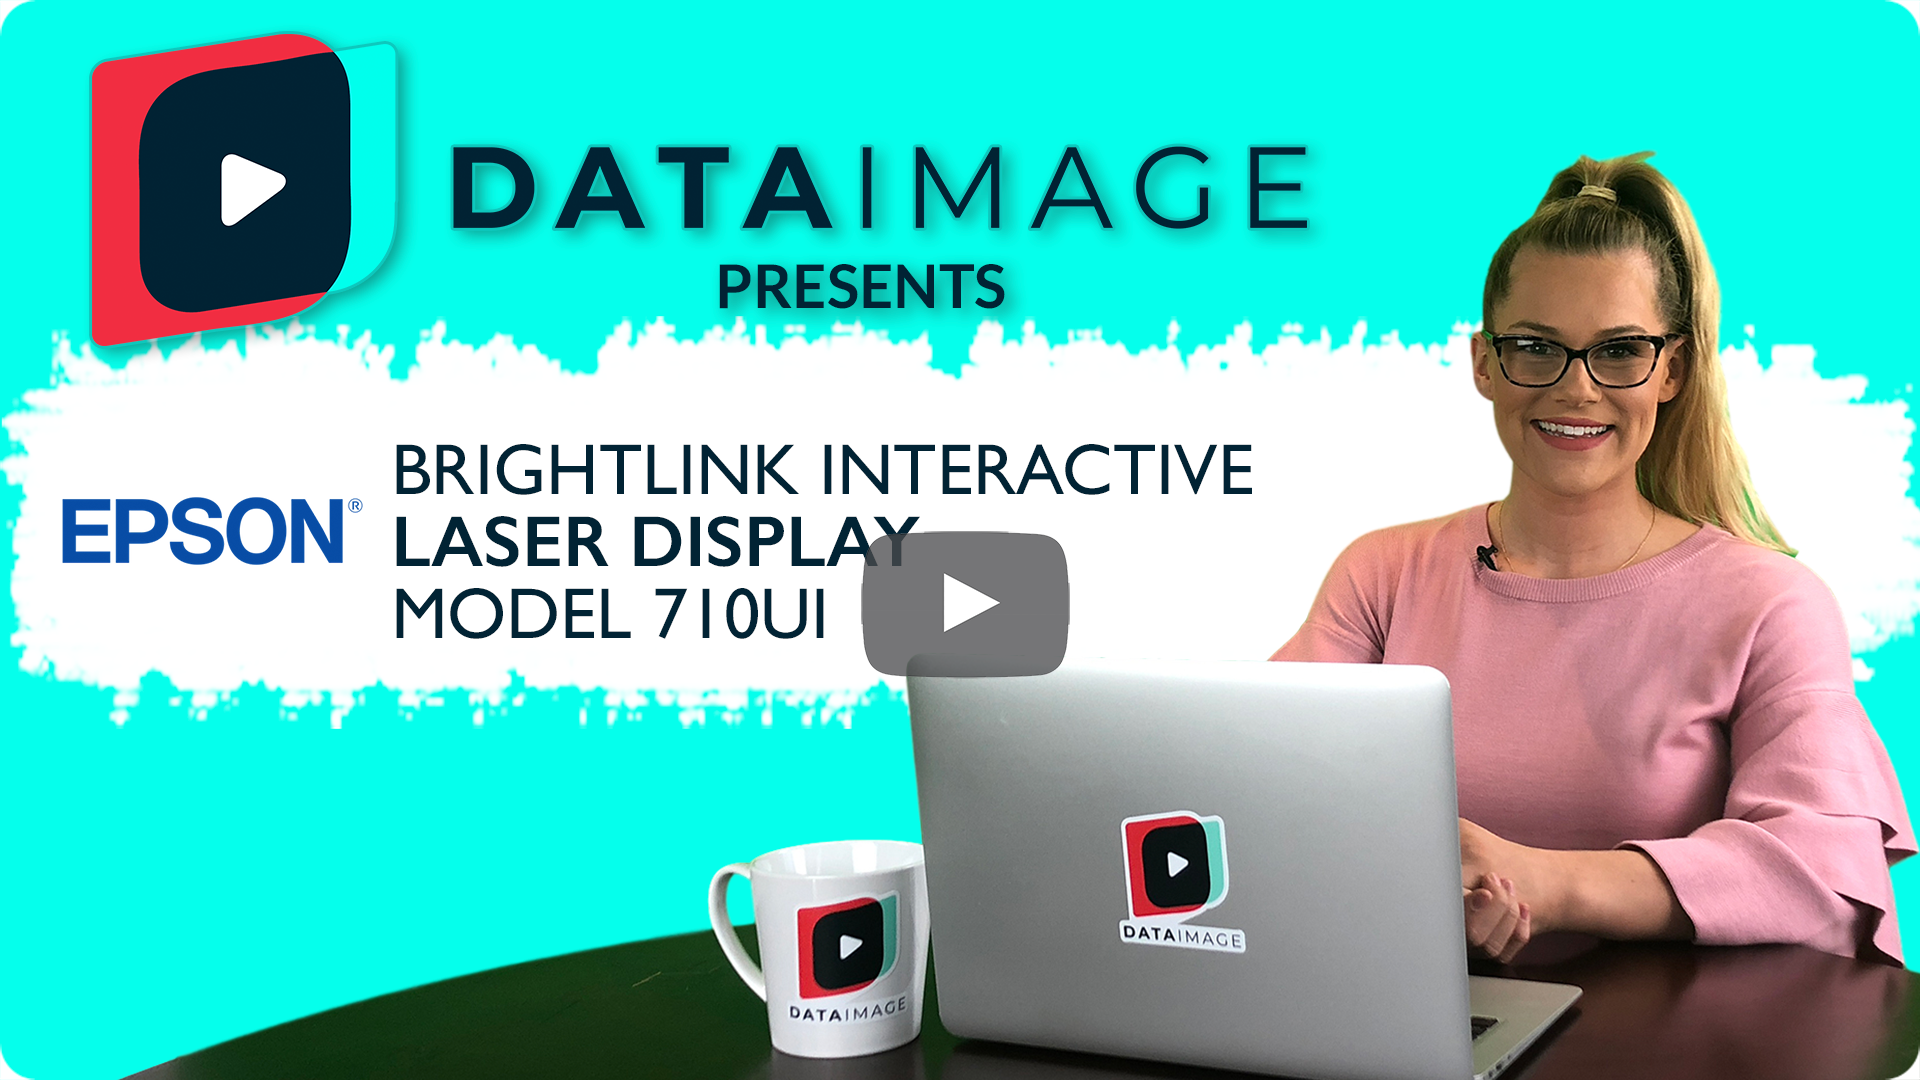 Epson Brightlink Interactive Laser Display 710Ui Video Cover